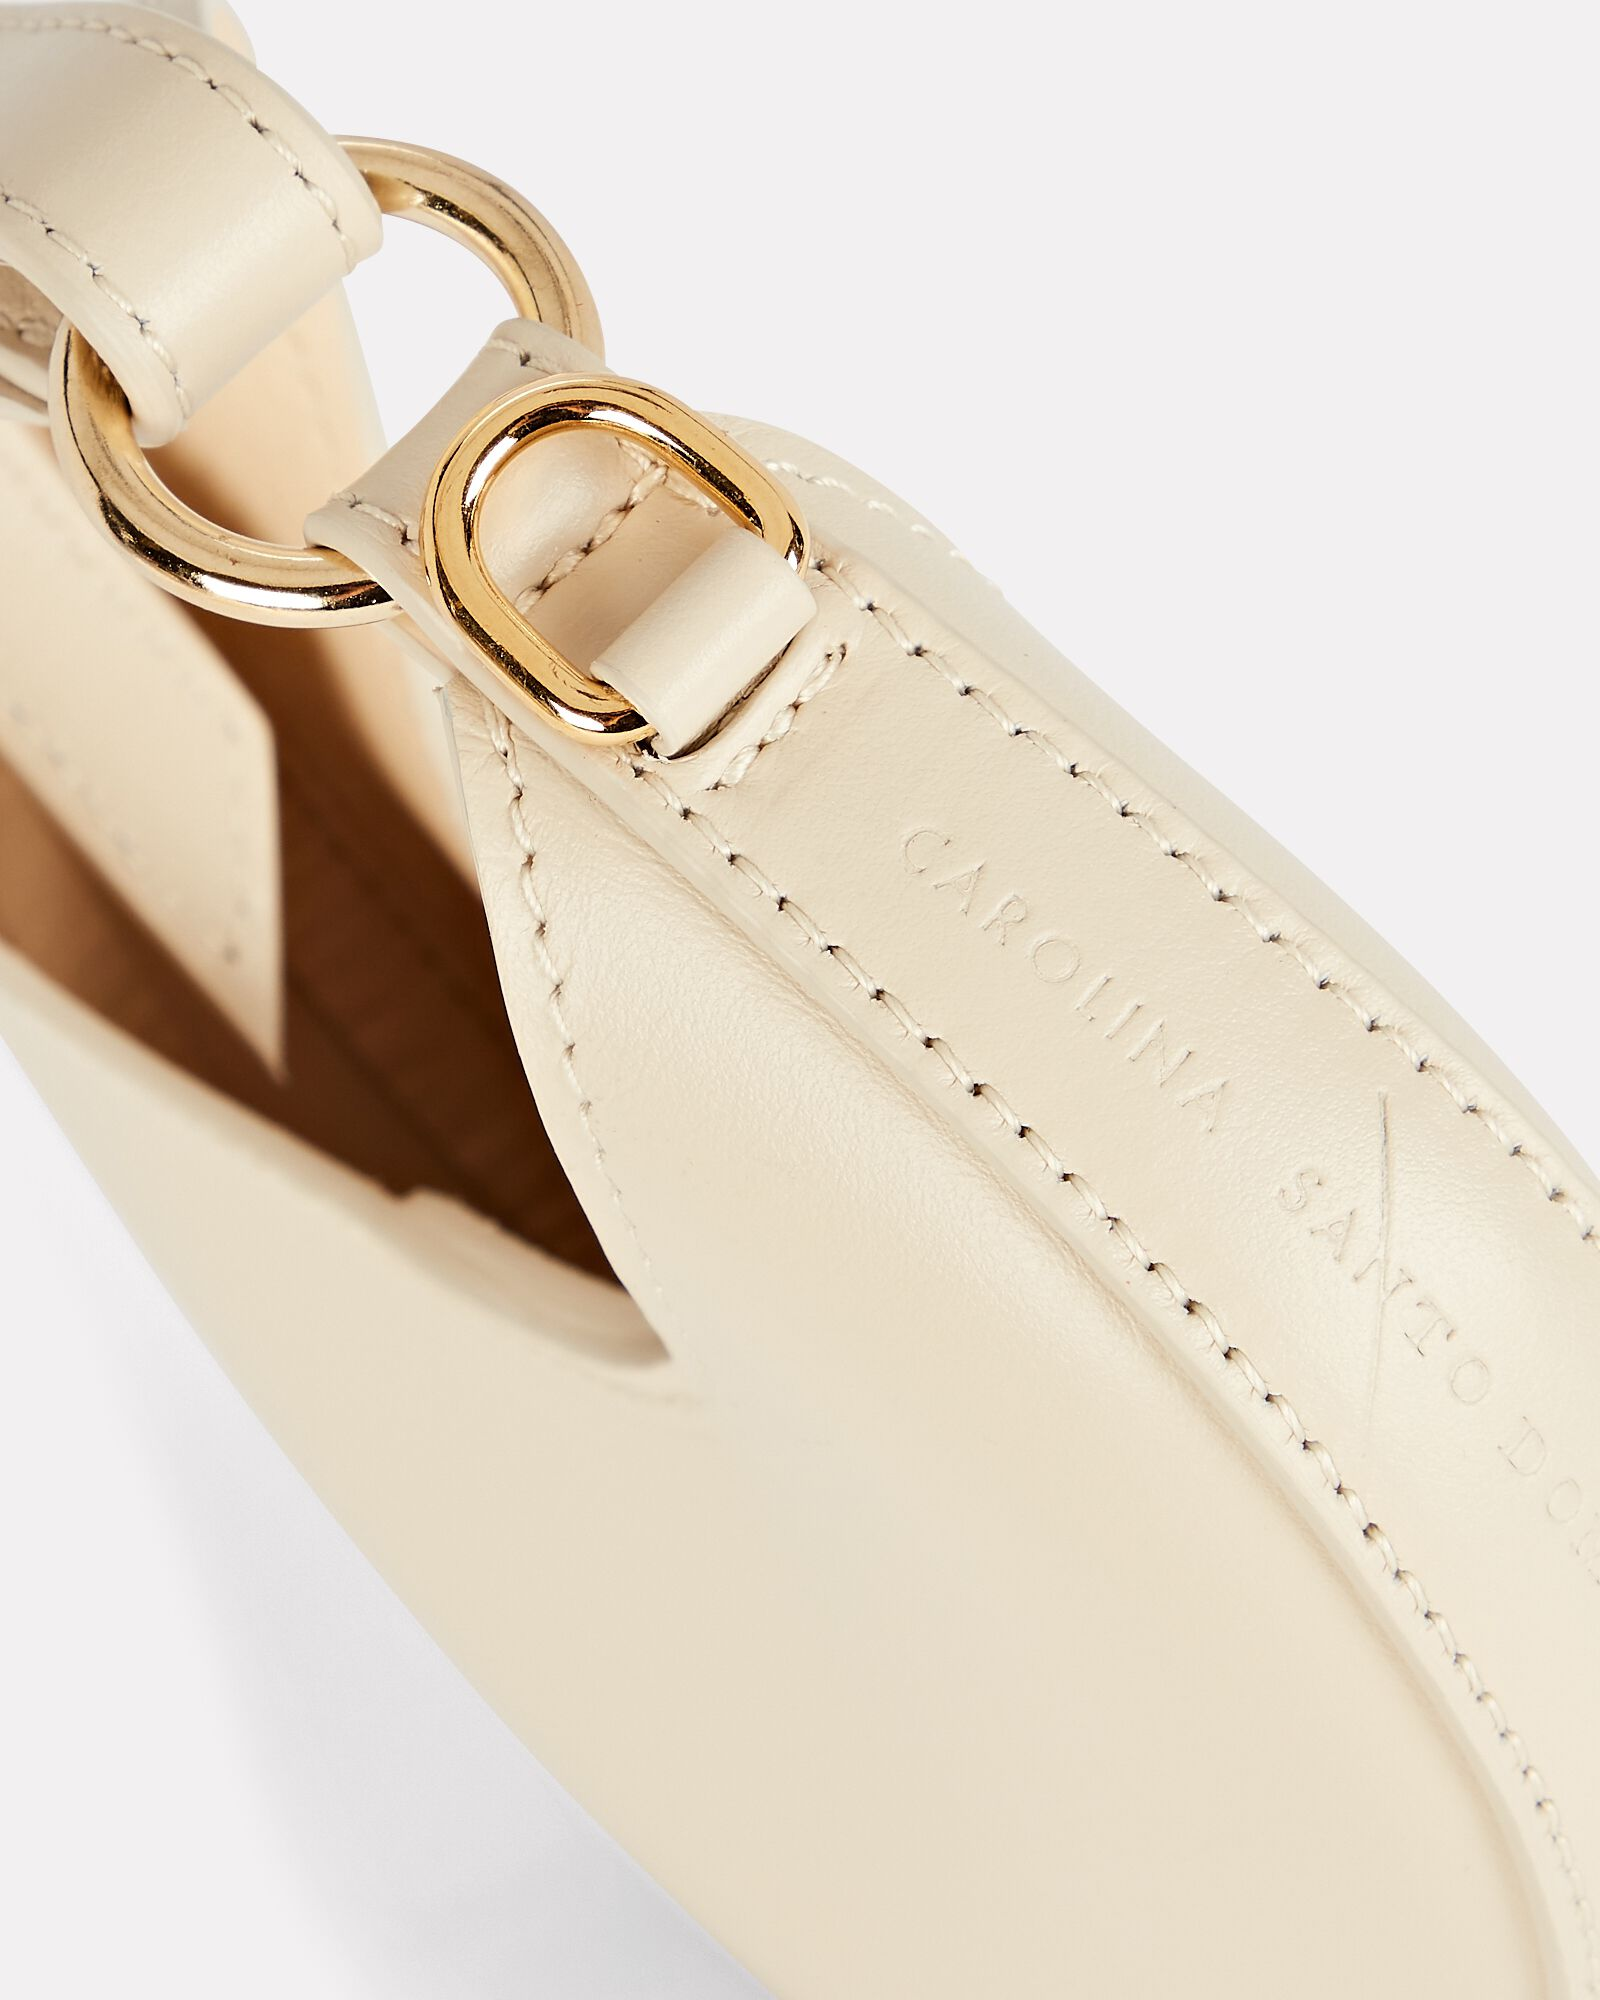 Mini Ostra Leather Crossbody Bag, IVORY, hi-res